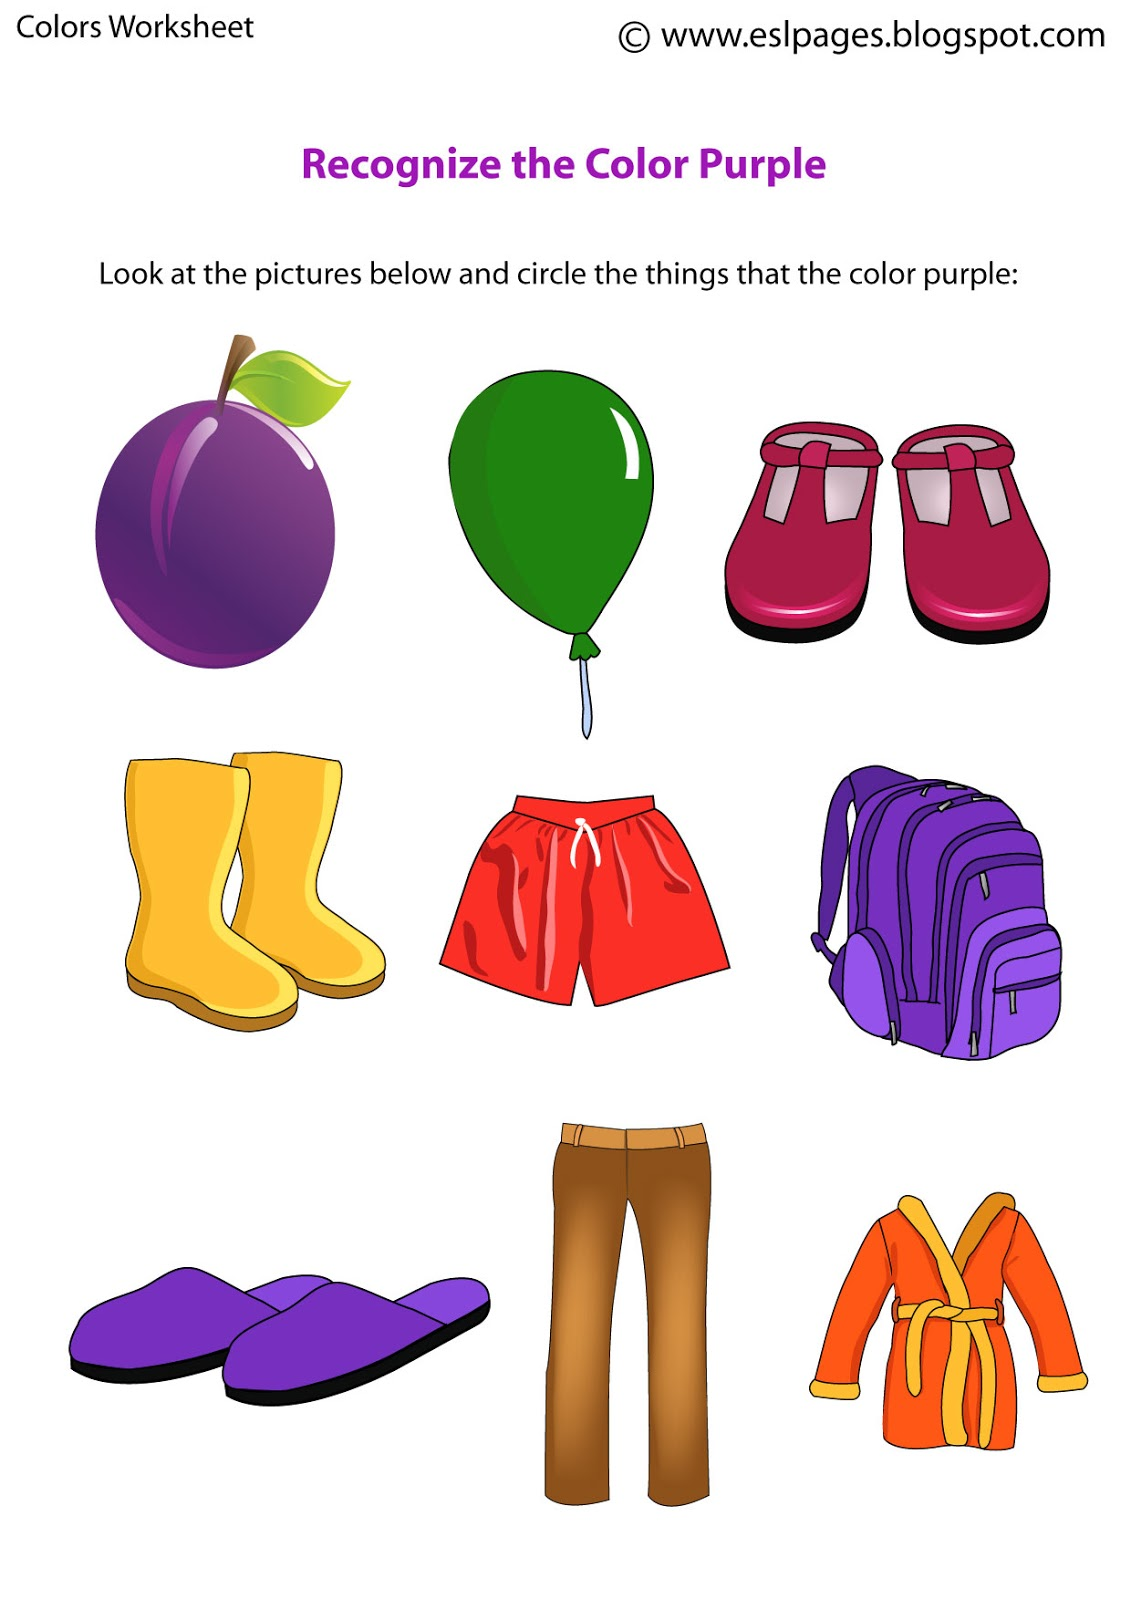 Colors Worksheets